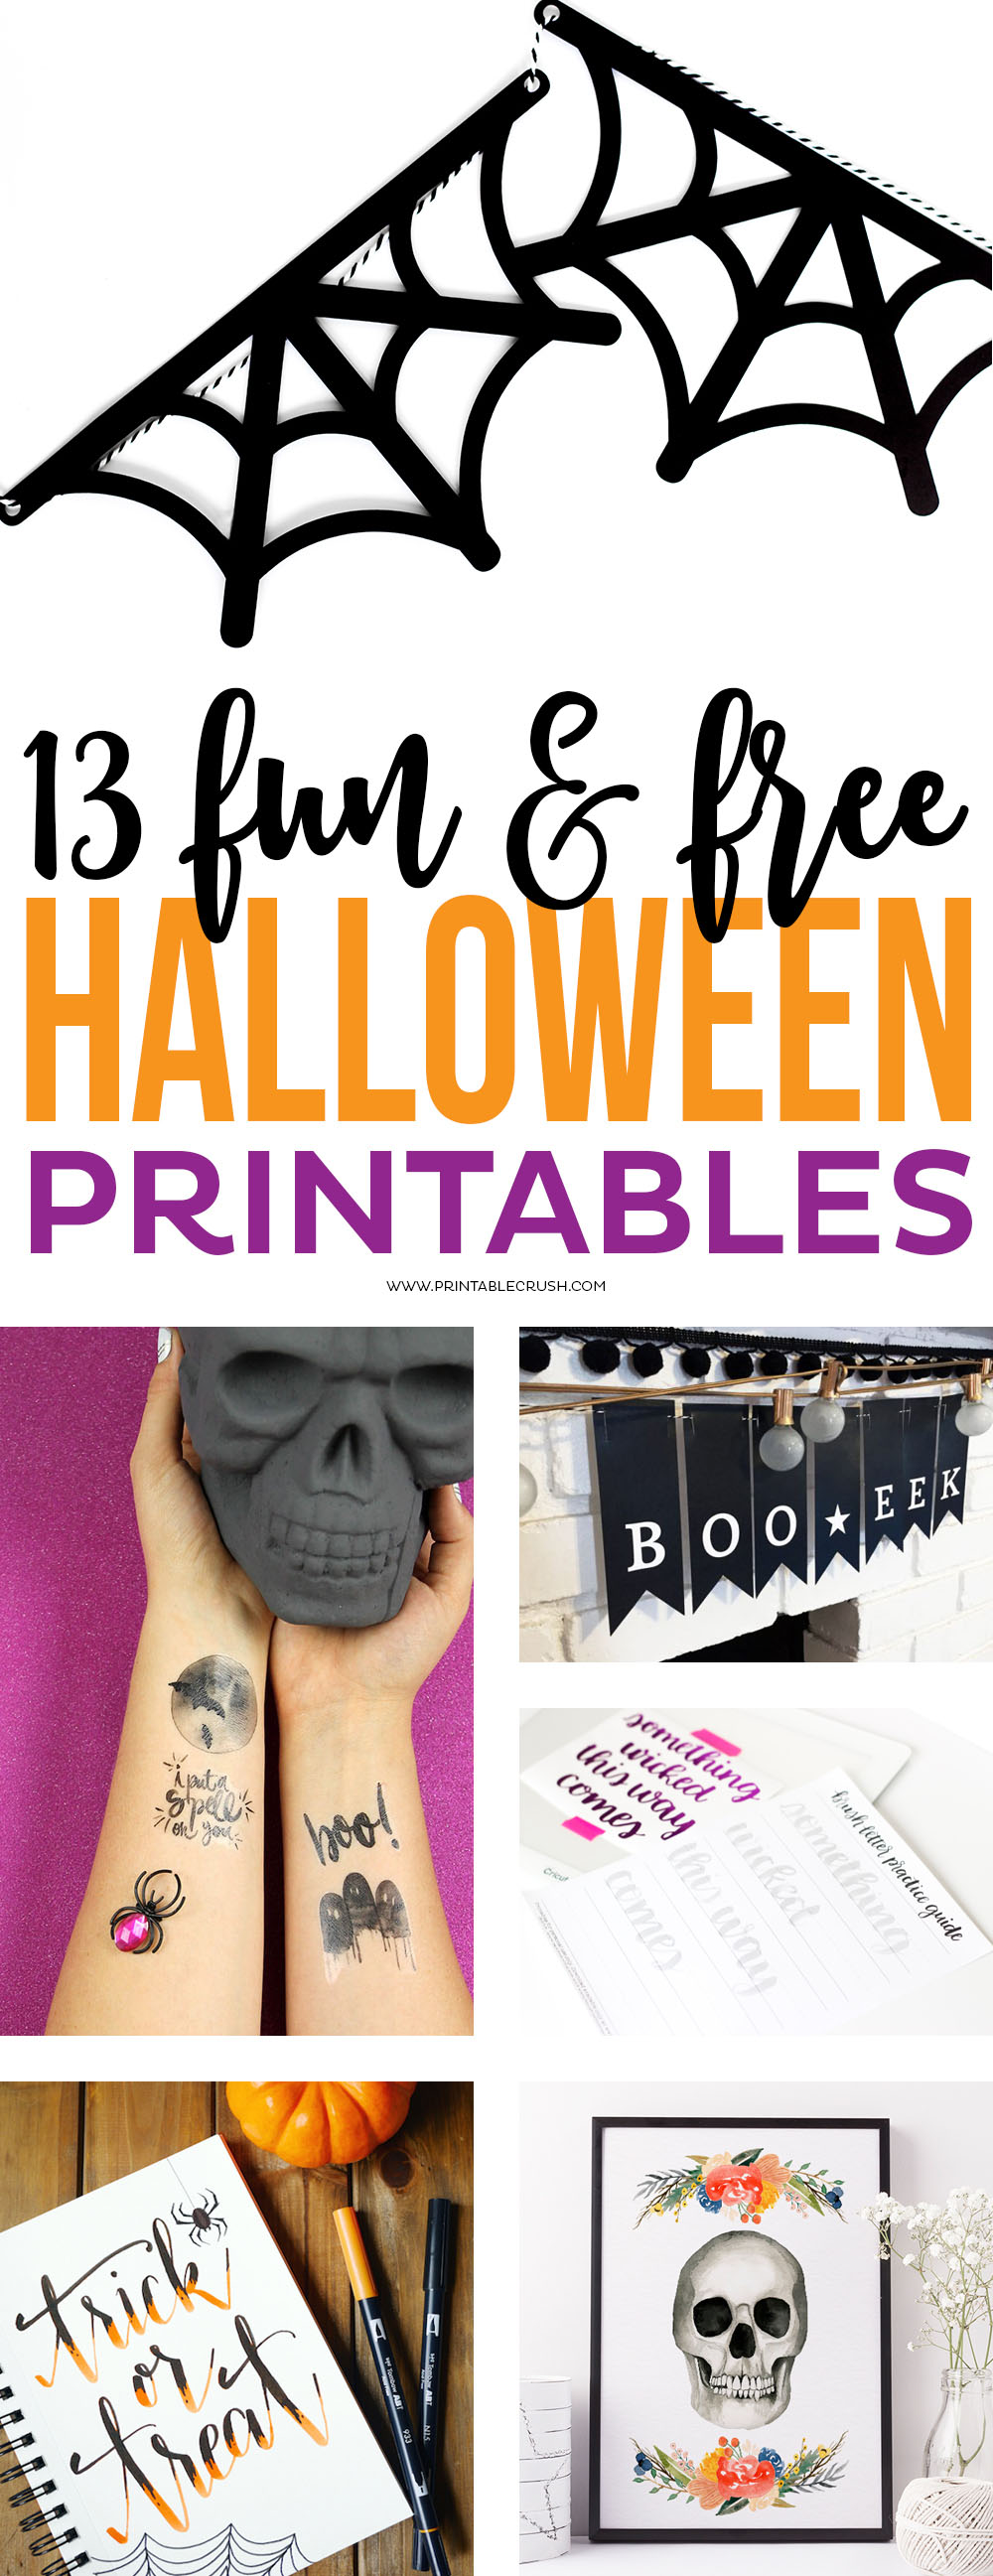 I am sharing my favorite FUN & FREE HALLOWEEN PRINTABLES to help you get prepped for Halloween. Get party ideas, home decor, lettering, and more!